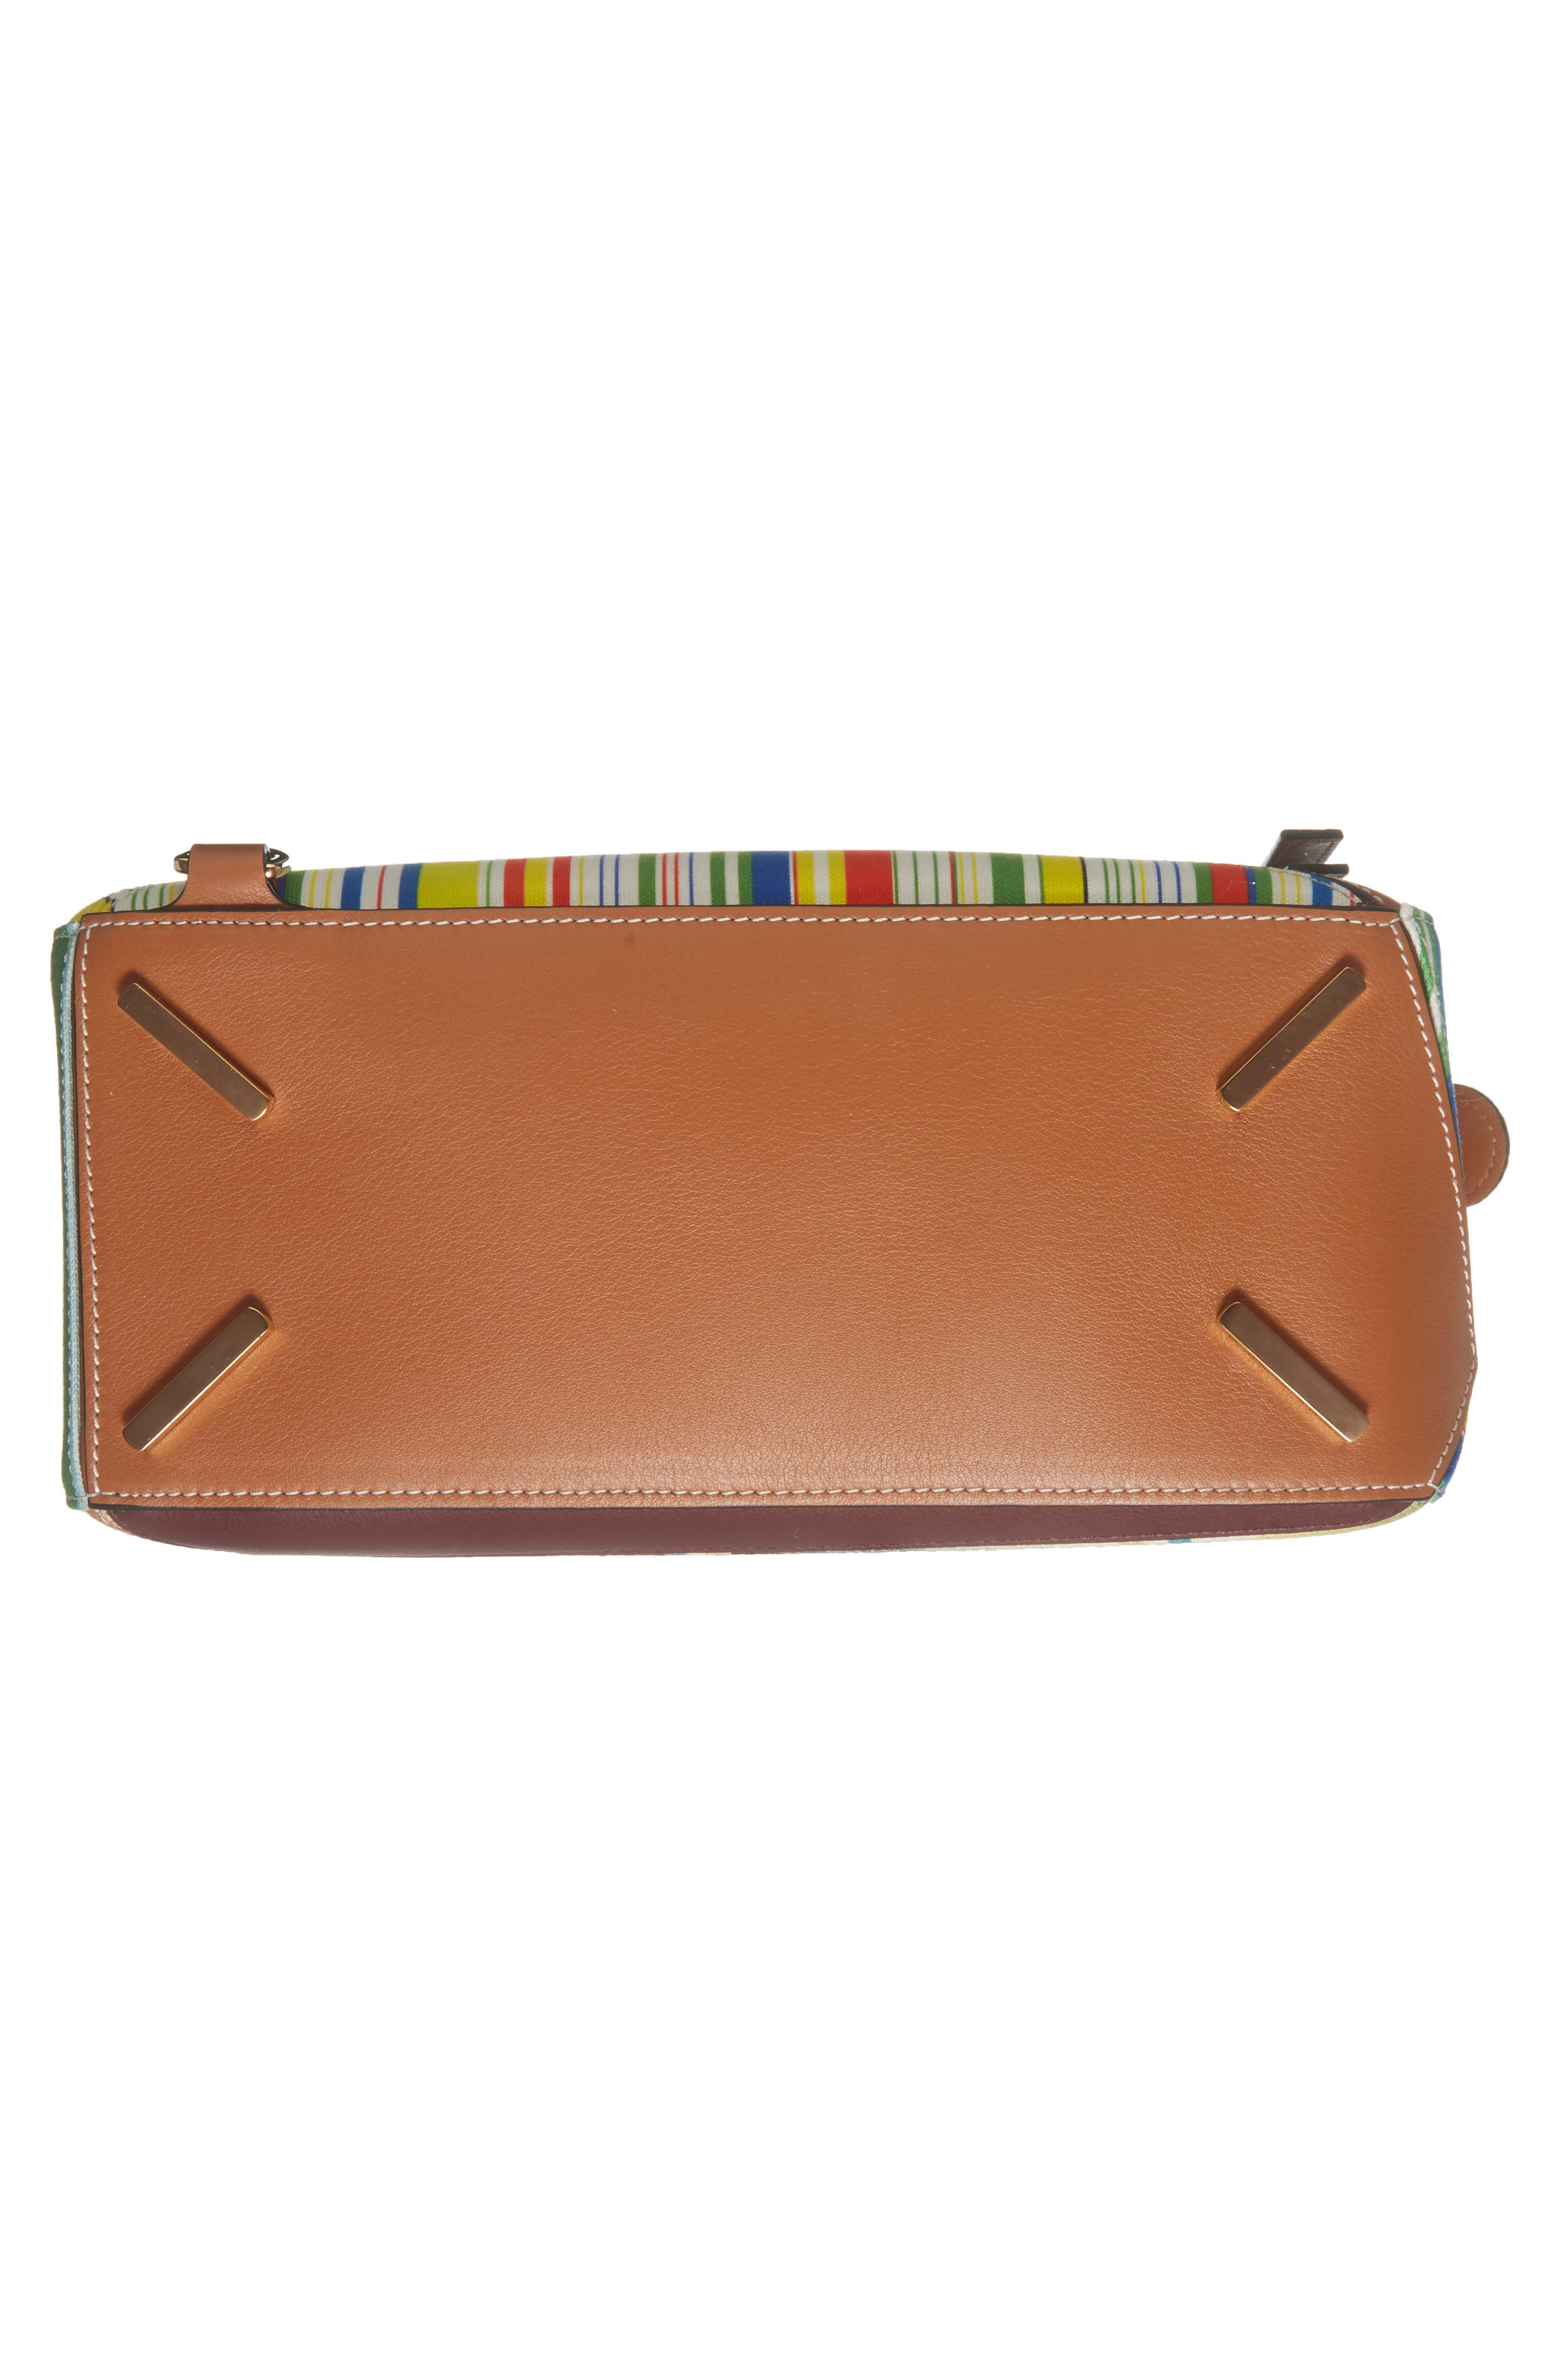 Medium Puzzle Stripe Canvas & Leather Shoulder Bag,                             Alternate thumbnail 7, color,